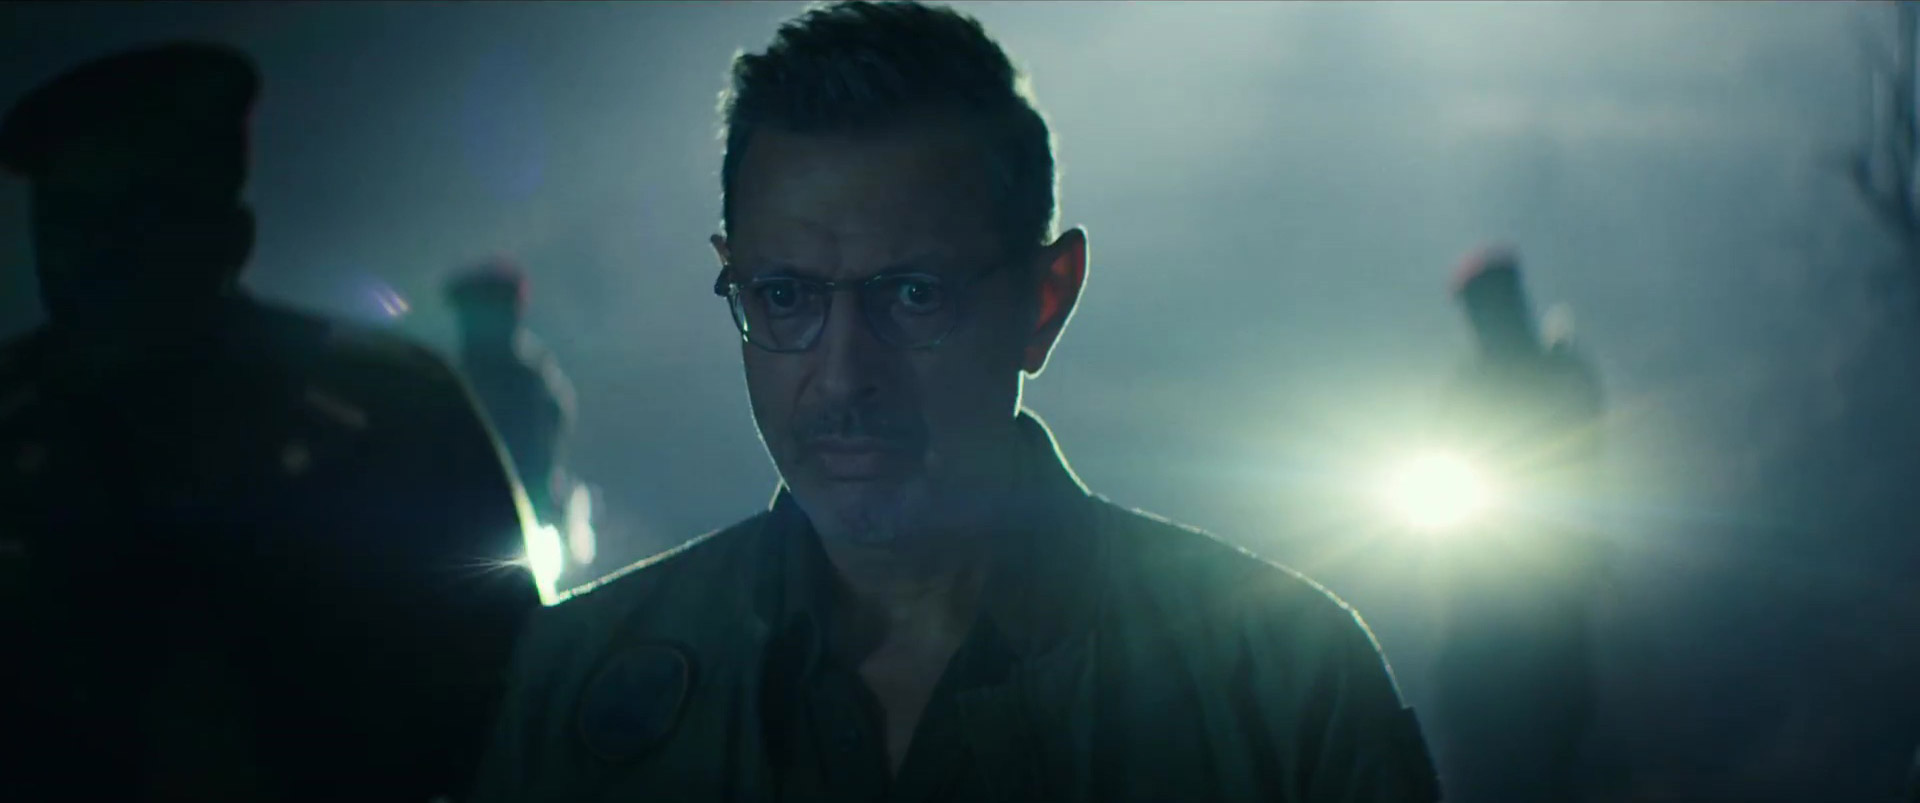 independence-day-insurgence-trailer